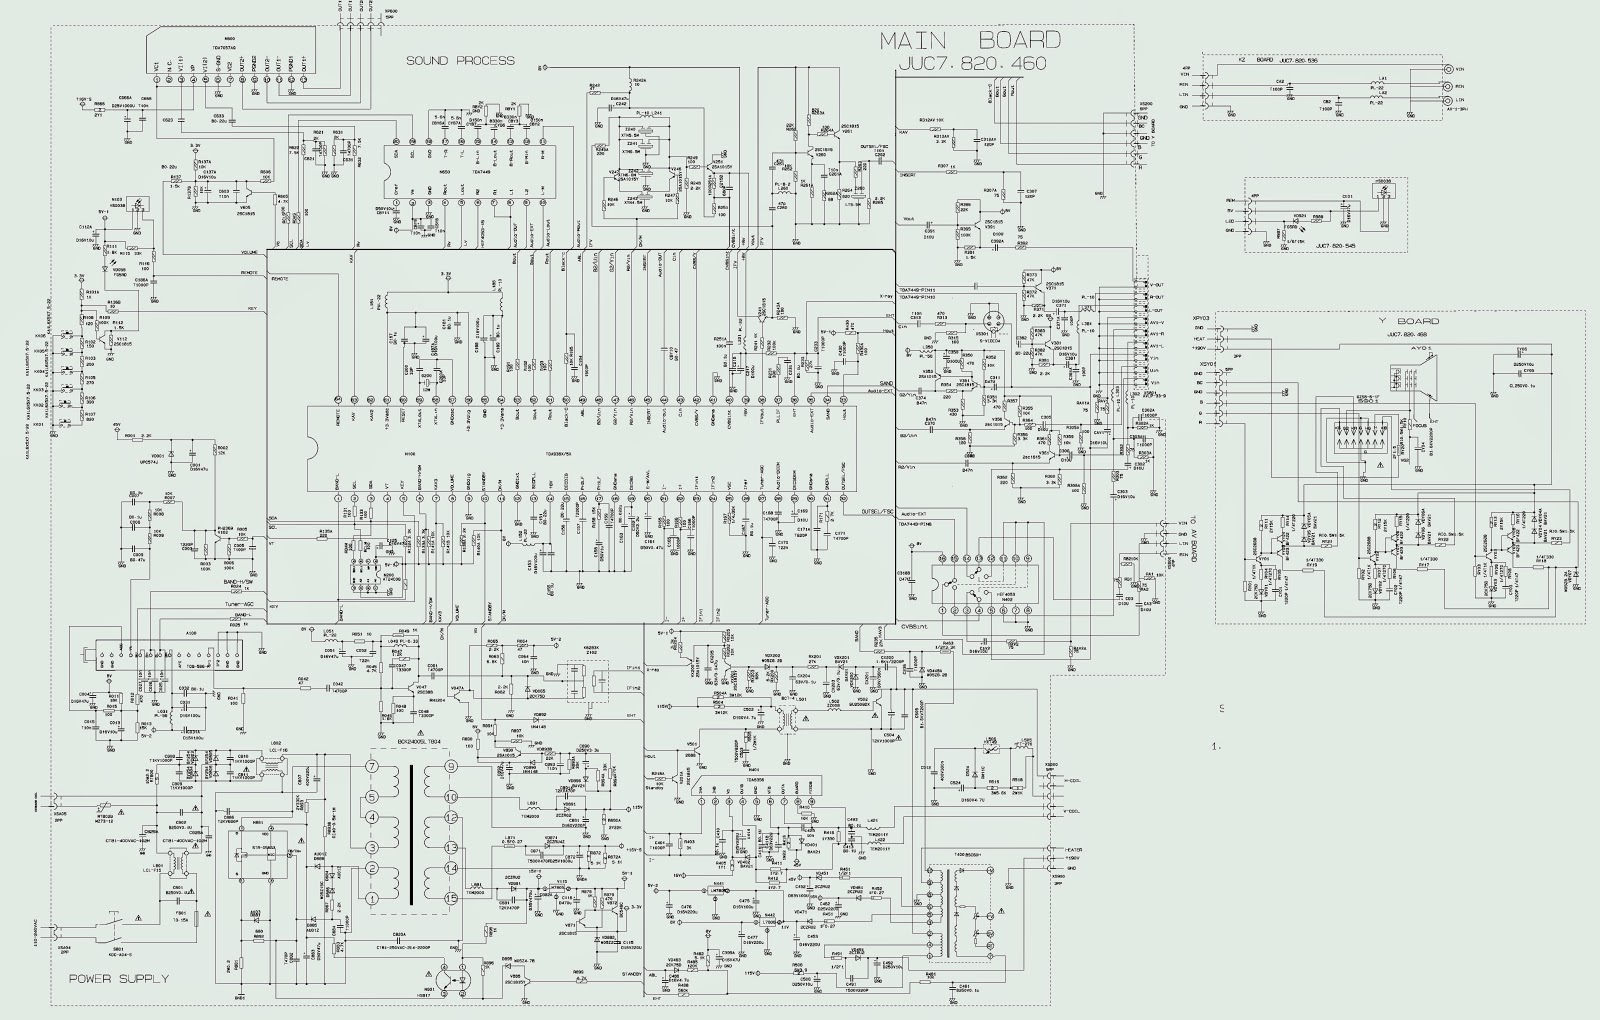 Toshiba Laptop Parts Diagram Trusted Schematics Vaio Free Download Wiring Schematic Www Topsimages Com Recall Introduction To Electrical